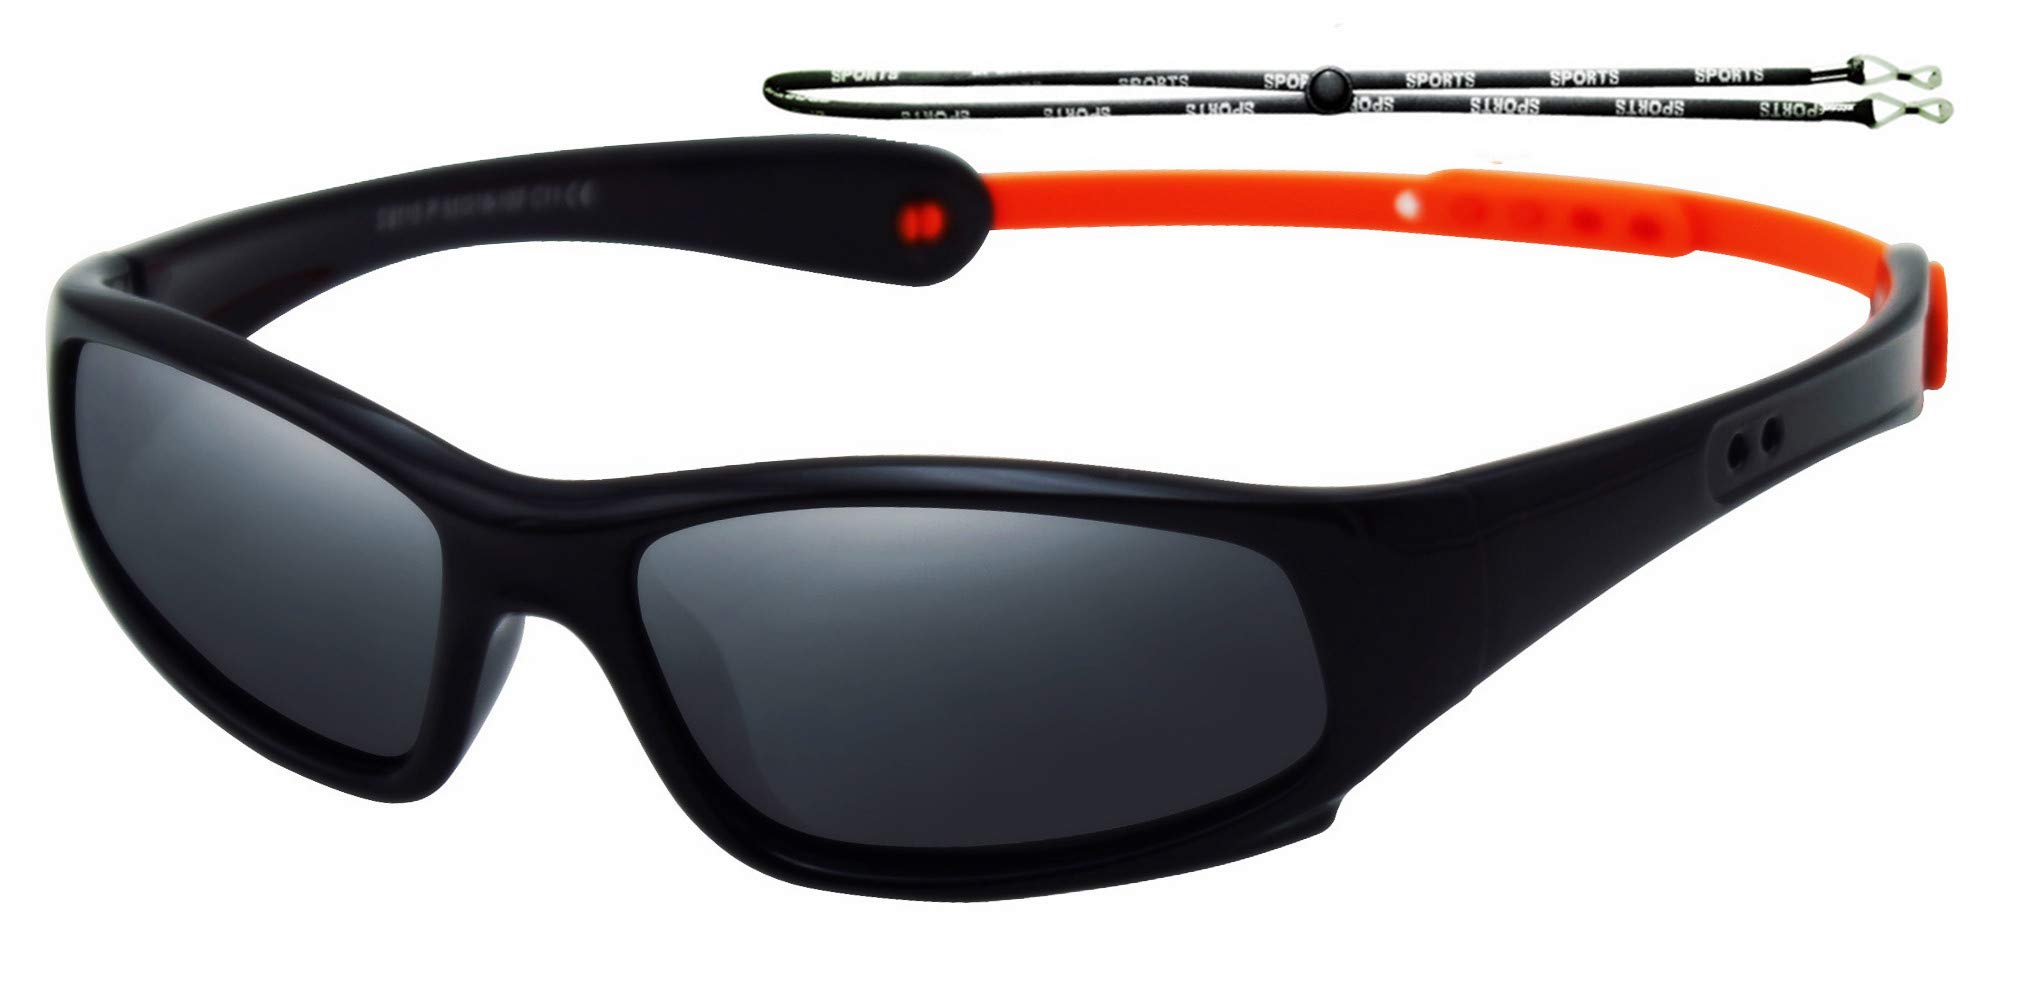 COOLSOME Flexible Rubber Kids Polarized UV Protection Sunglasses for Boys Girls 2-7 Years Old (black)